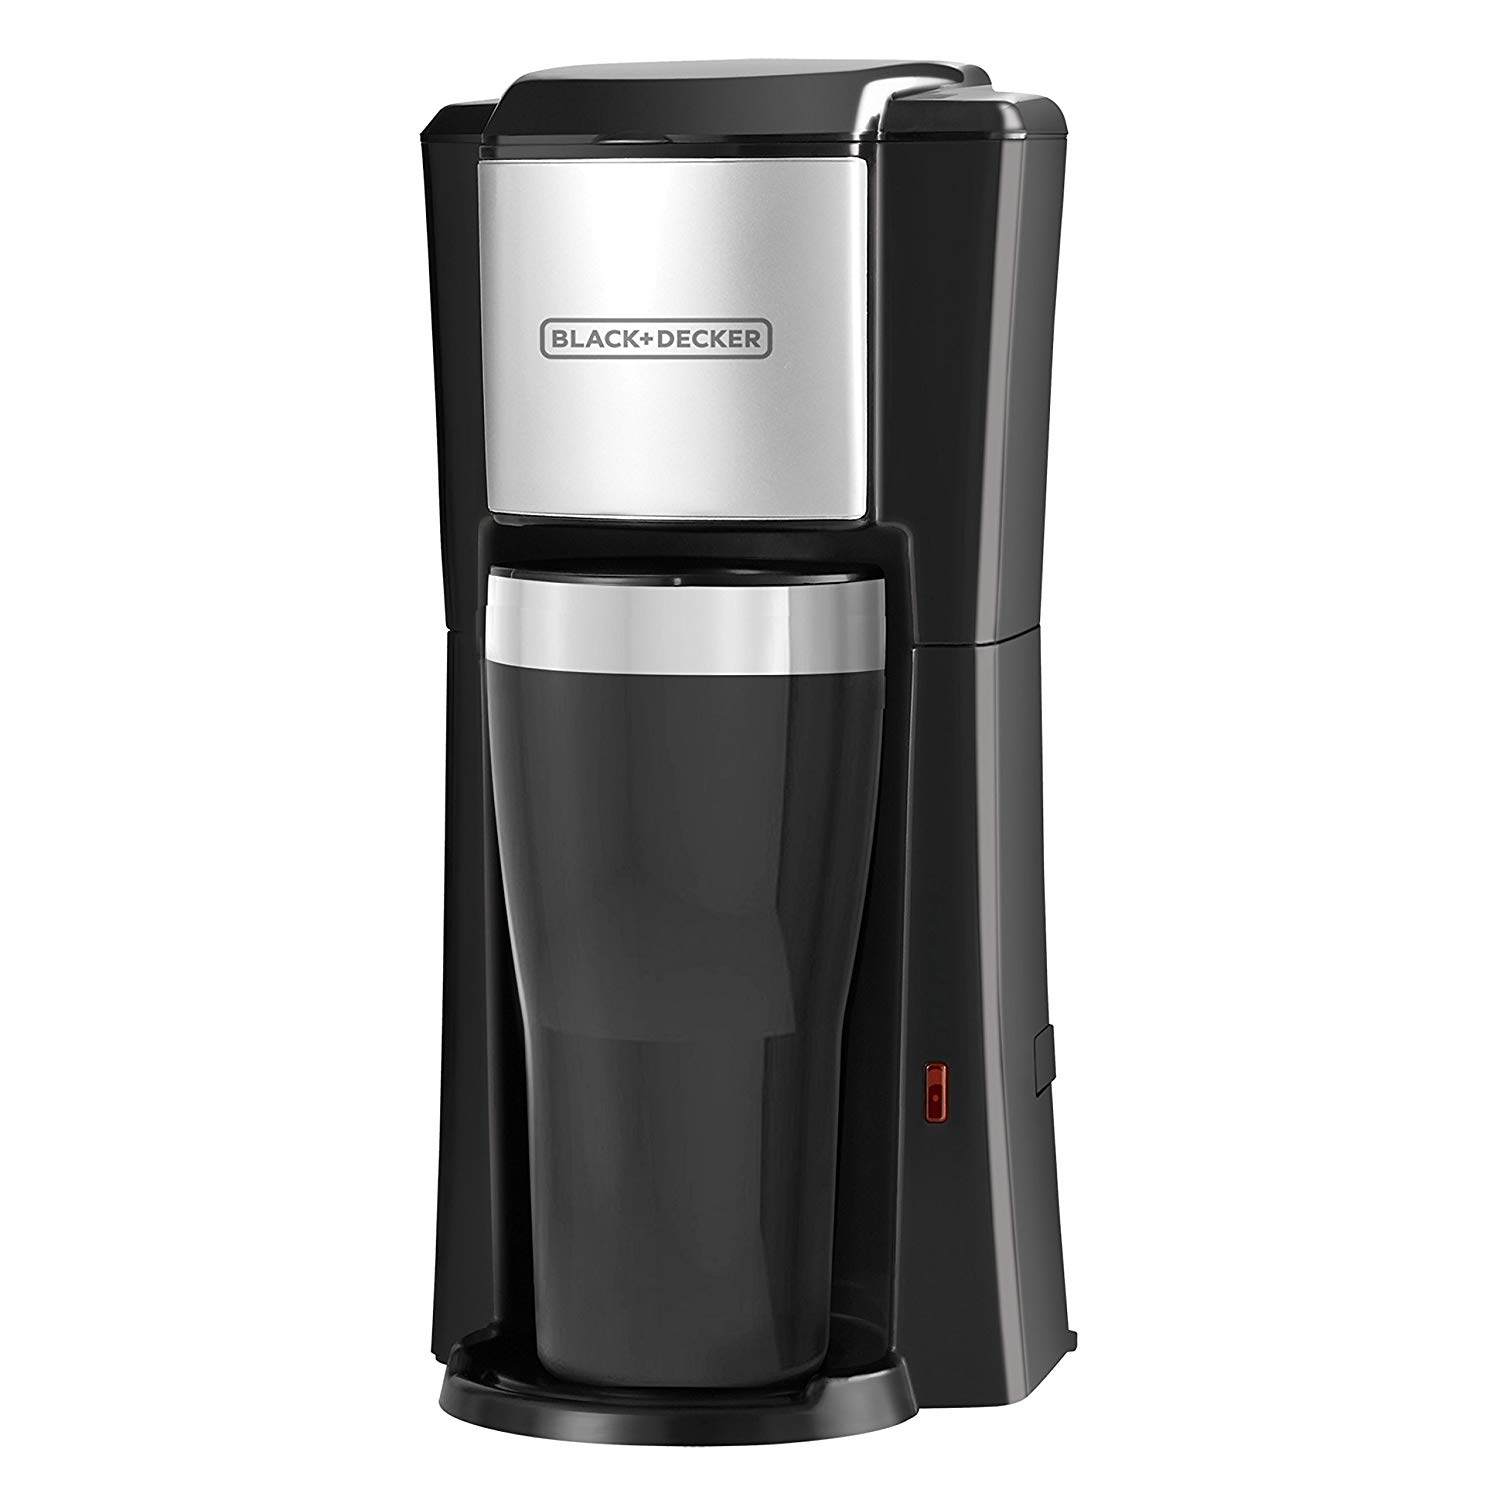 A sleek single-serve coffee maker from Black and Decker